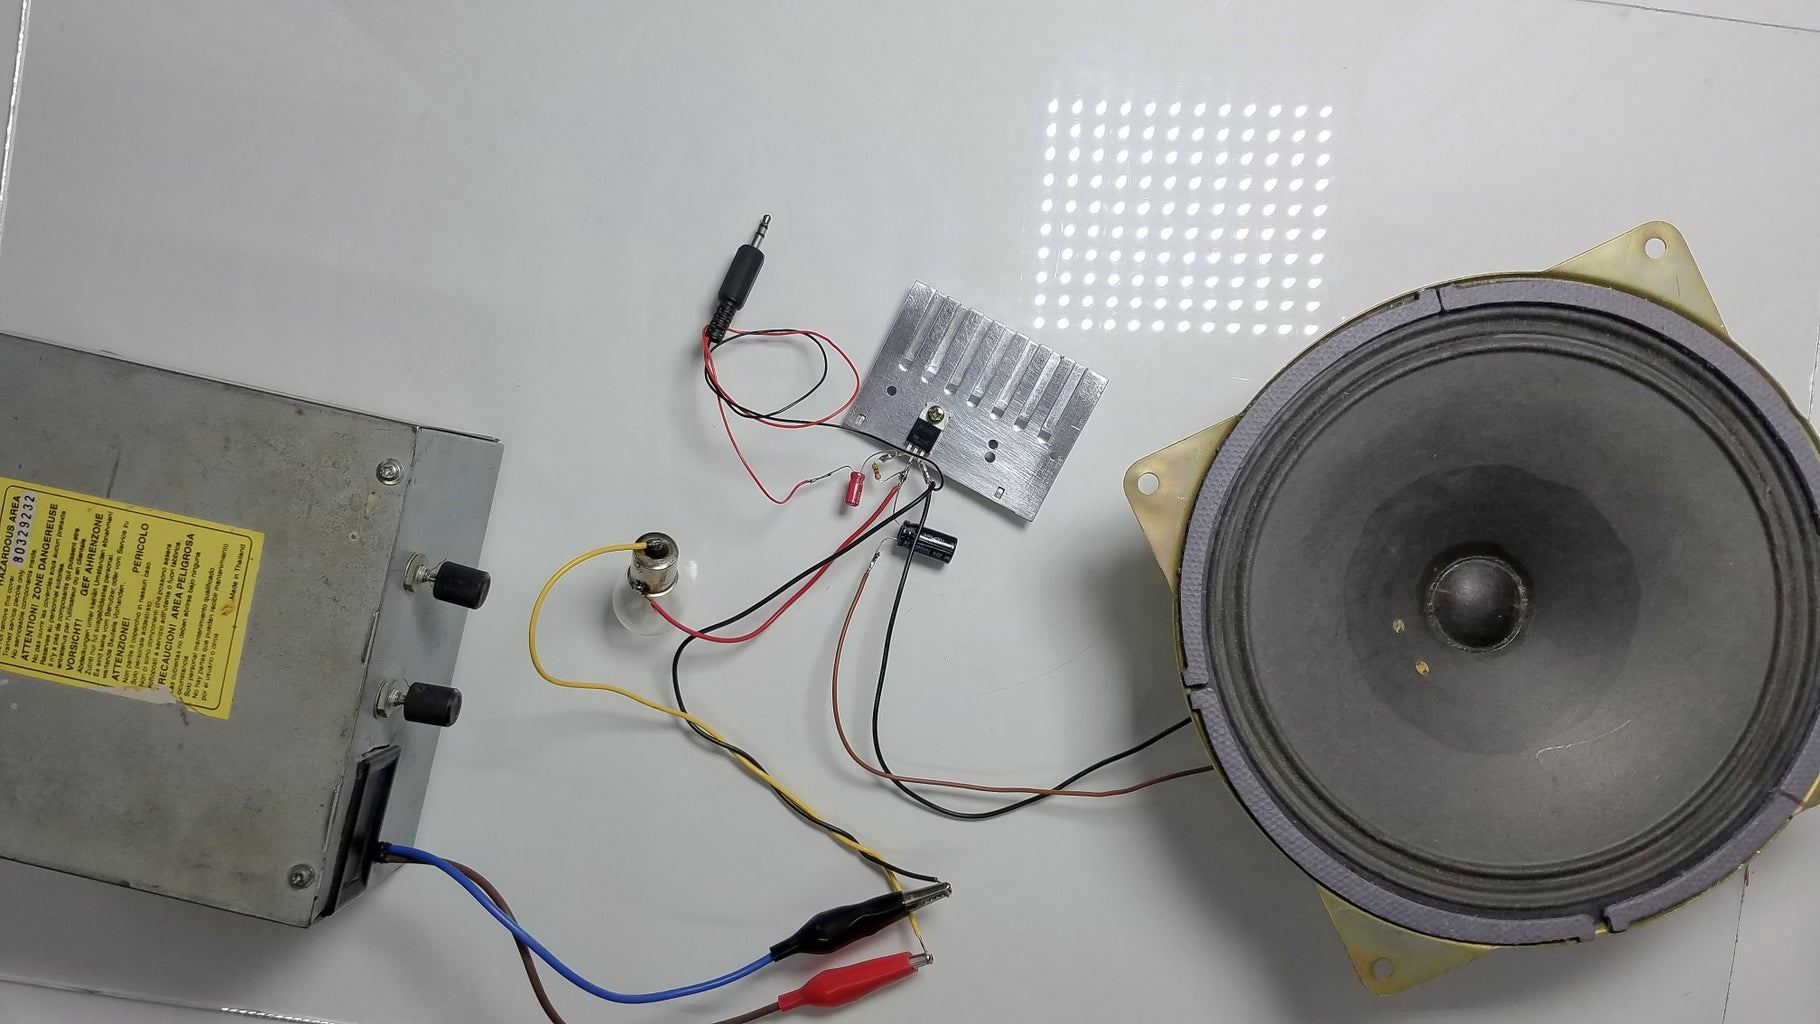 Connect a Power Source